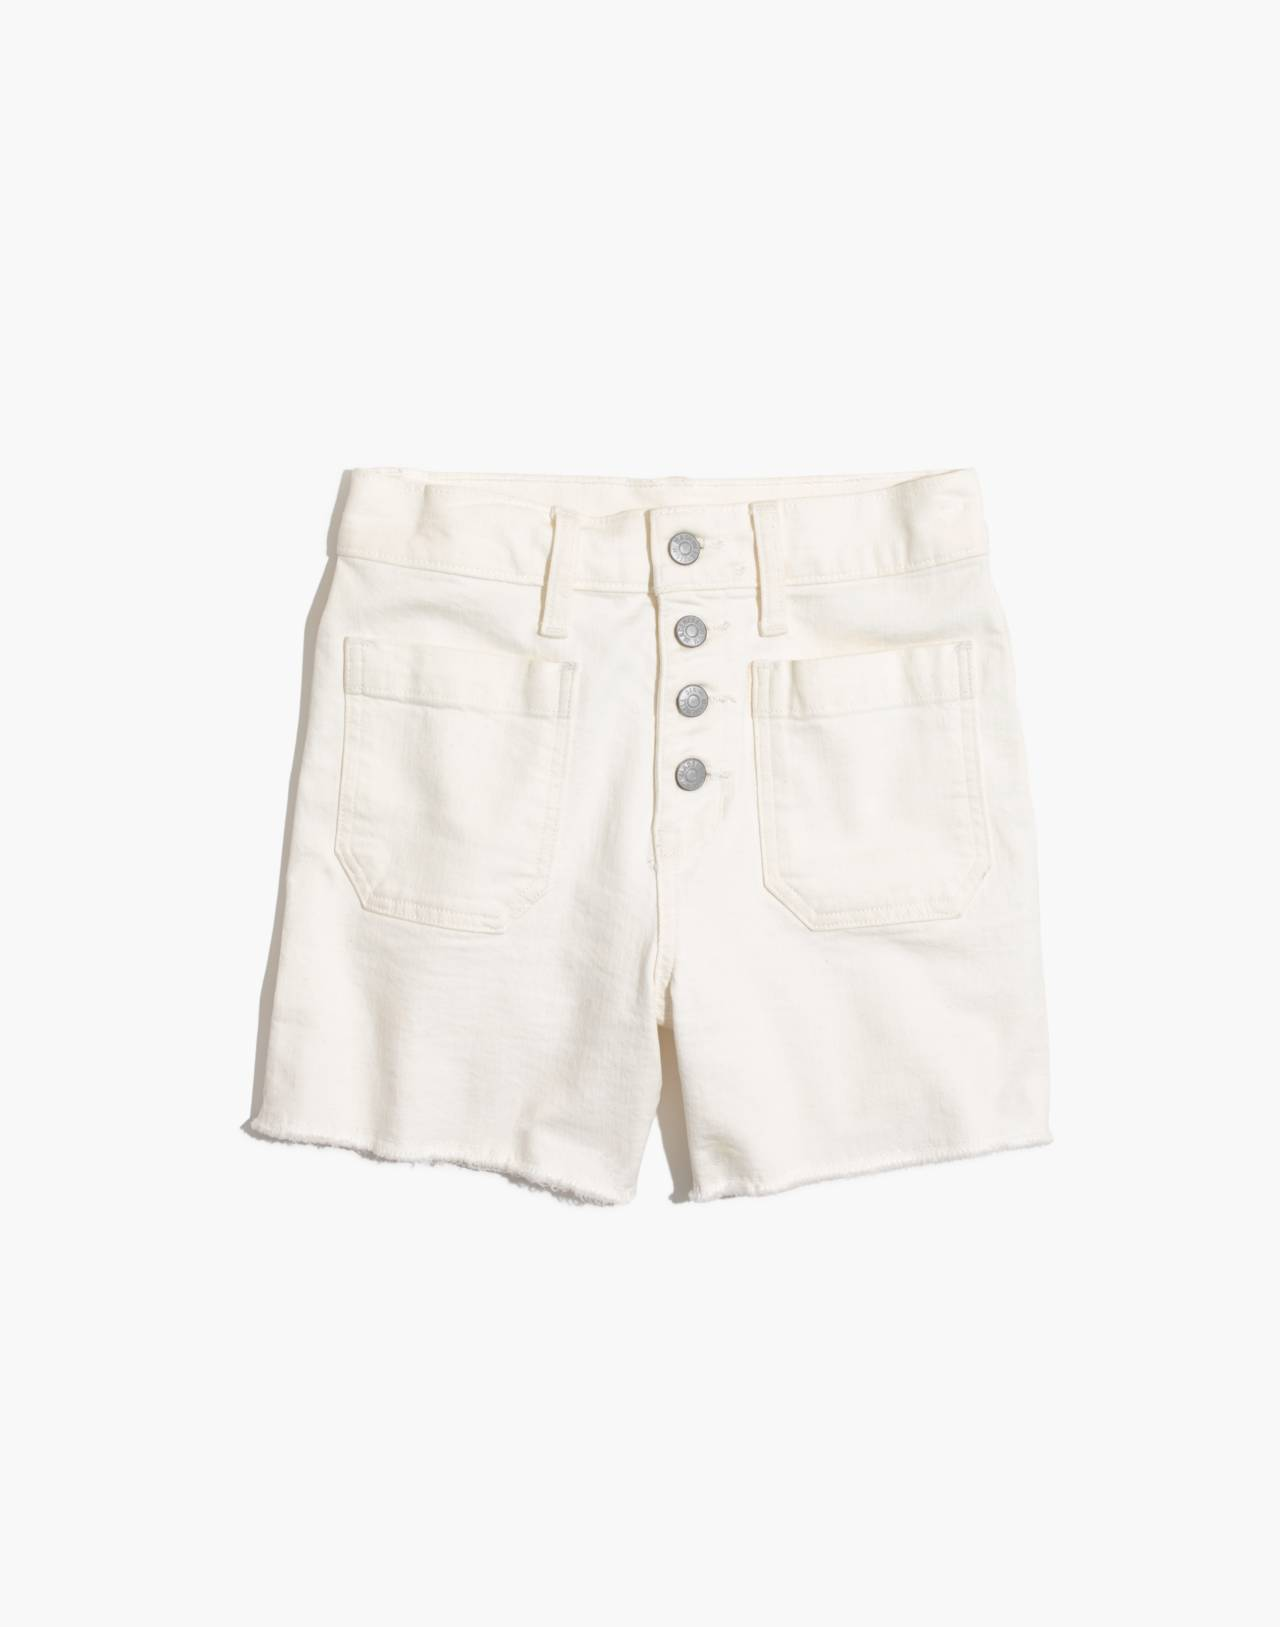 High-Rise Denim Boyshorts in Tile White: Button-Through Edition in tile white image 4